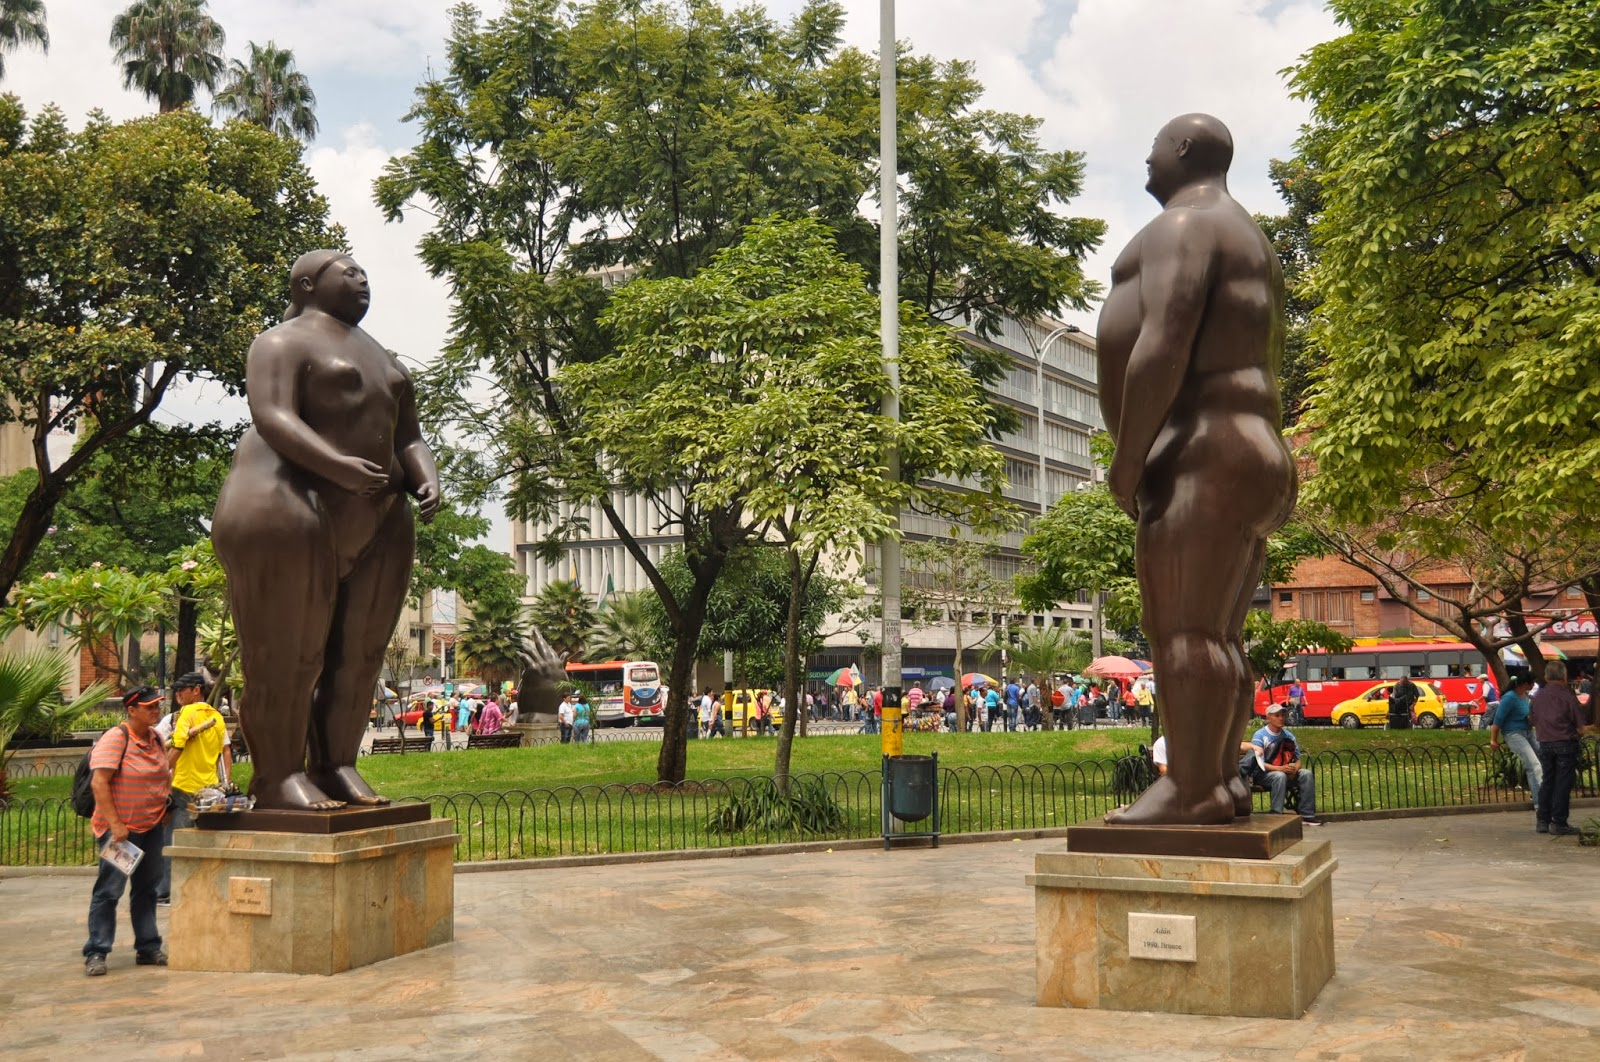 We saw lots of Botero's famous bronze statues